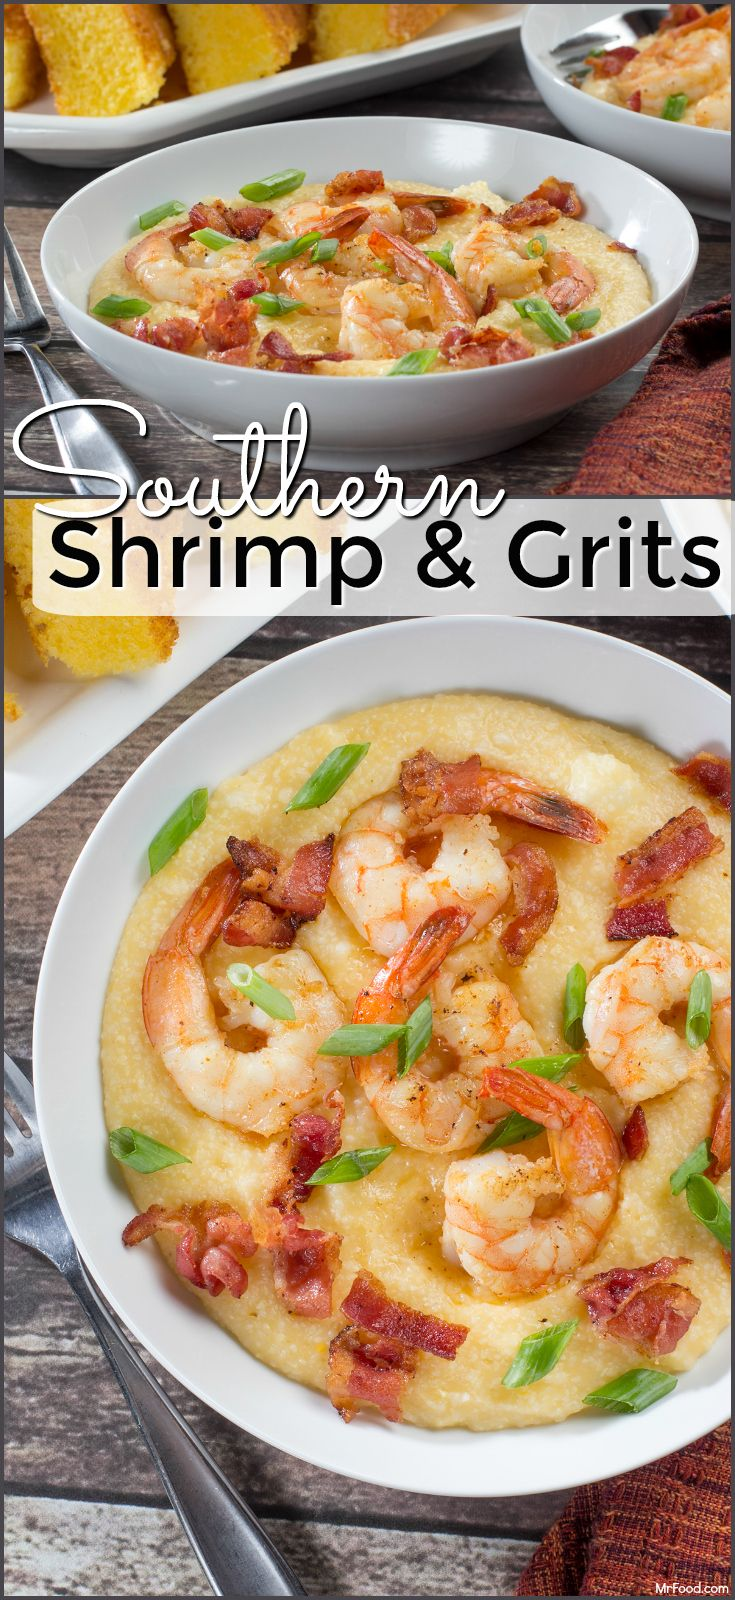 Serve Up A Southern Breakfast Staple Our Shrimp And Grits Are Just Perfect!